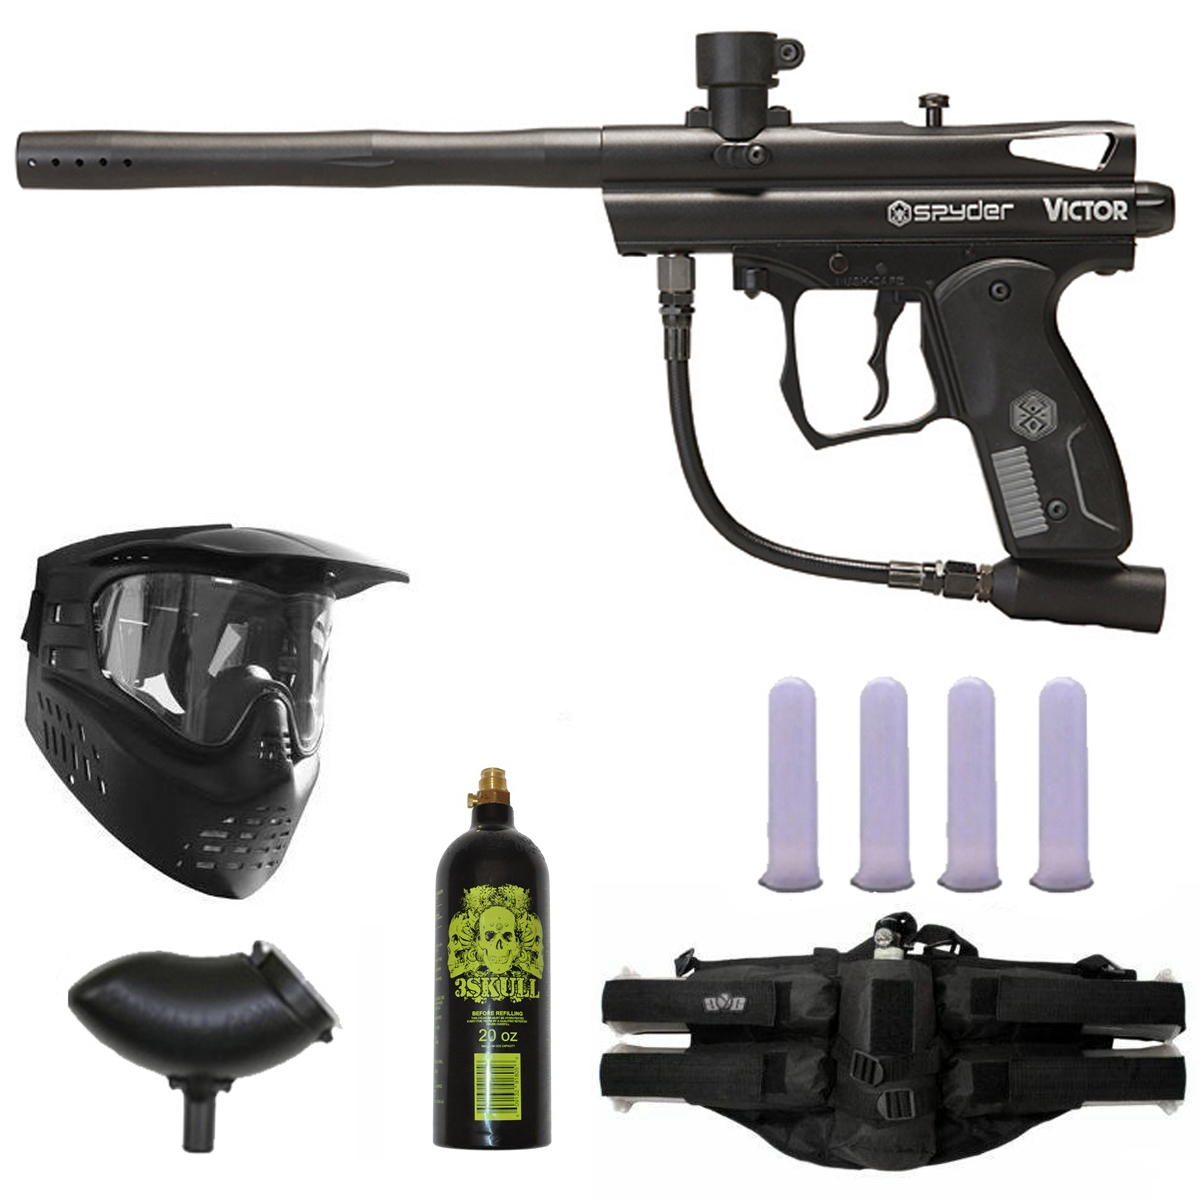 Spyder Victor Paintball Gun Marker GXG 4+1 Gun Package by